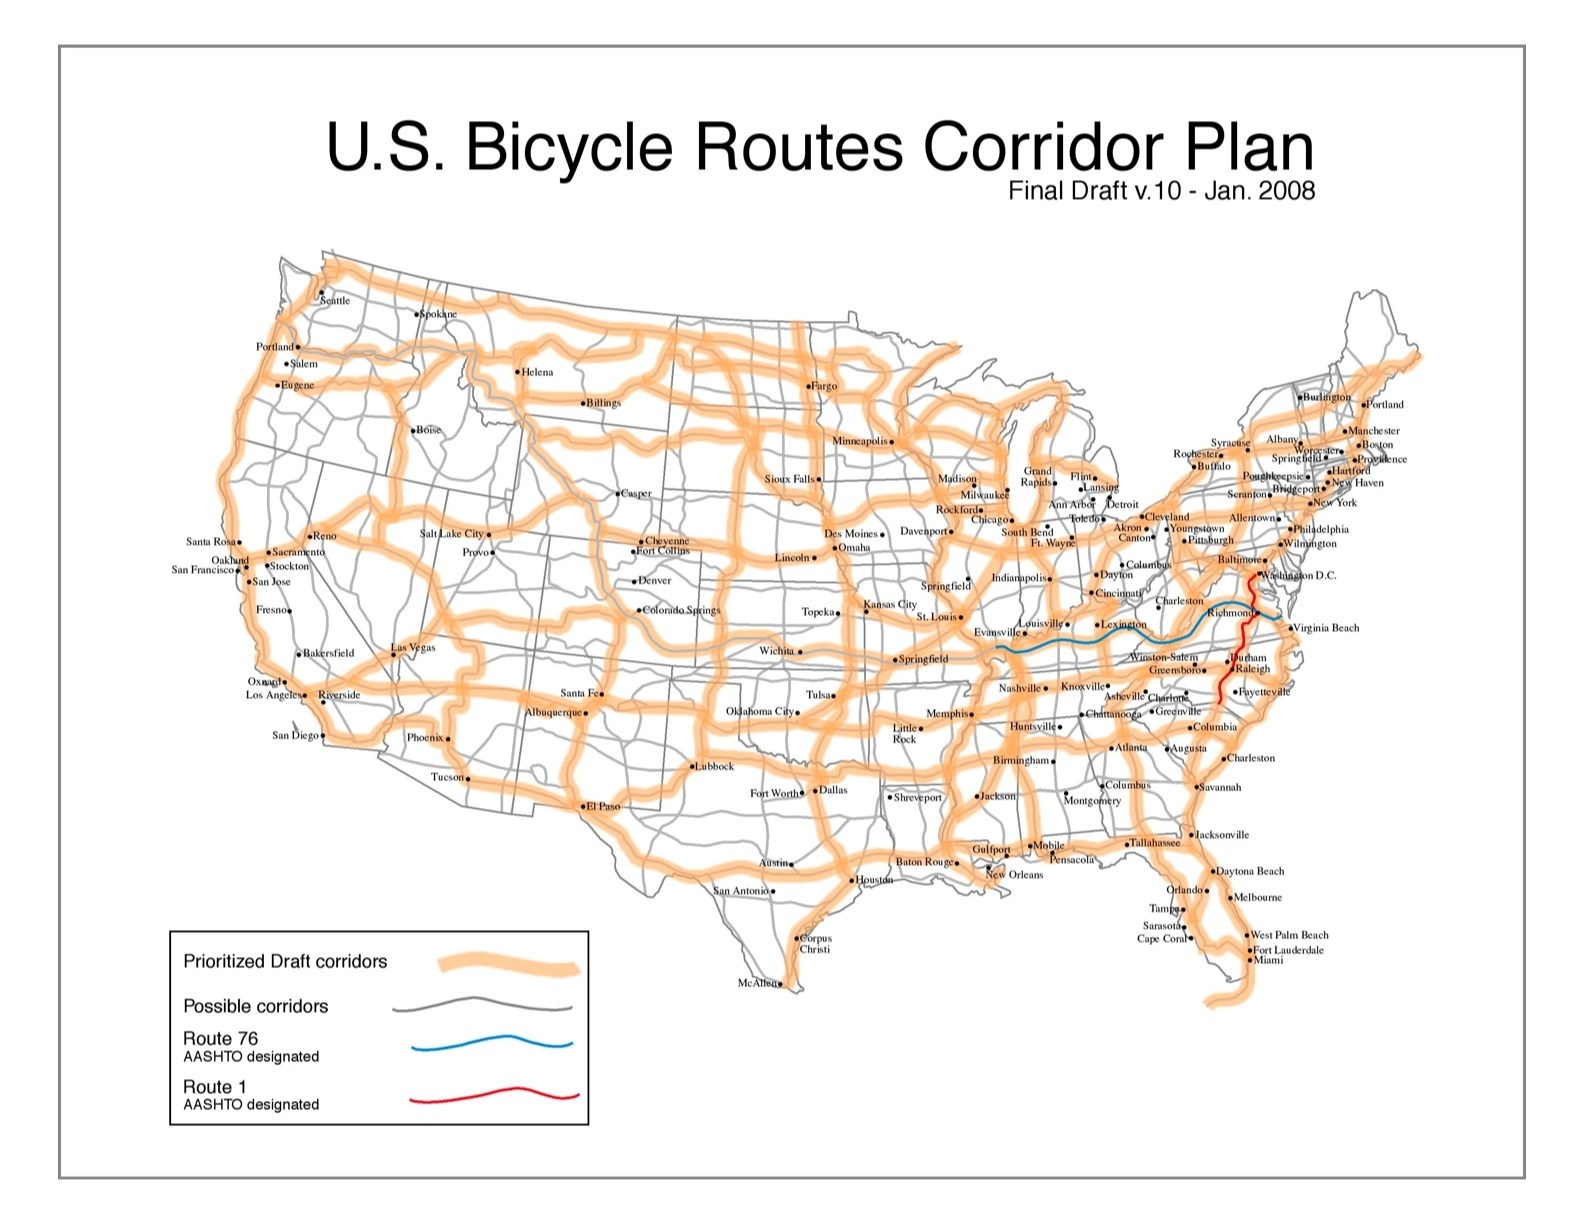 imagine a national bike route system - bikeportland